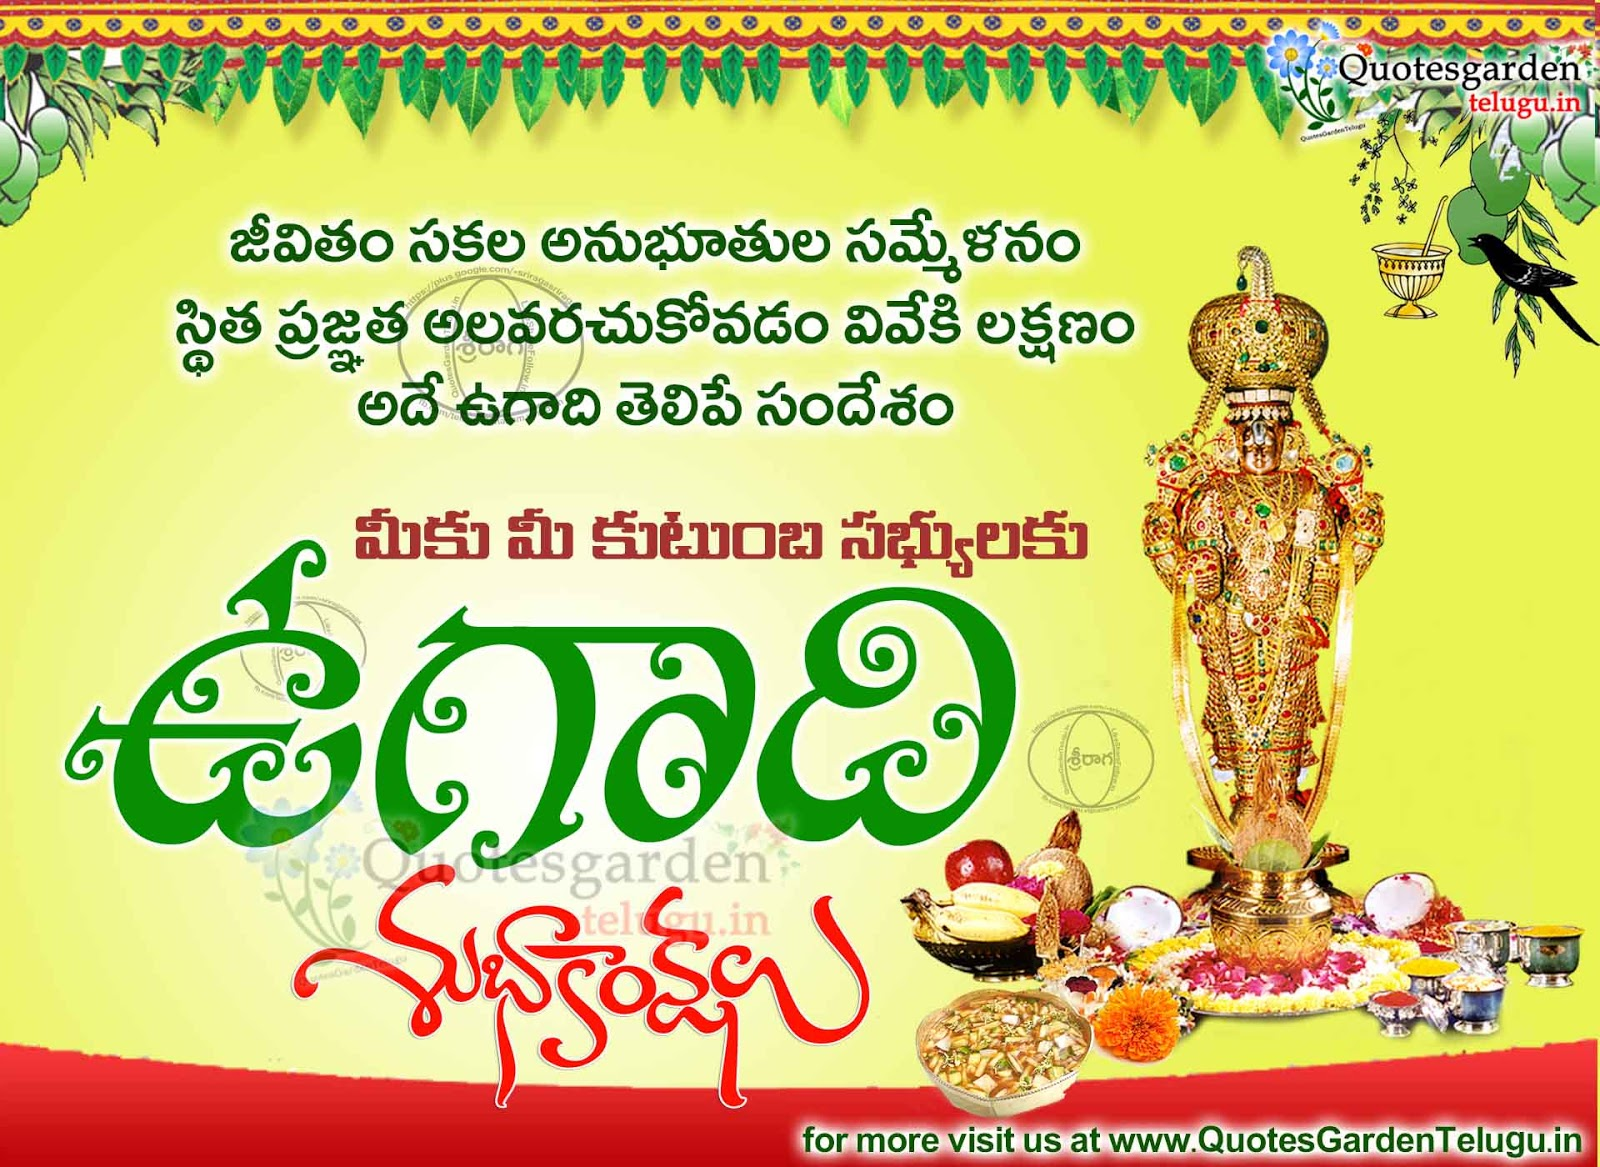 Ugadi 2018 telugu greetings ugadi wishes quotes quotes garden ugadi 2018 telugu greetings ugadi wishes quotes m4hsunfo